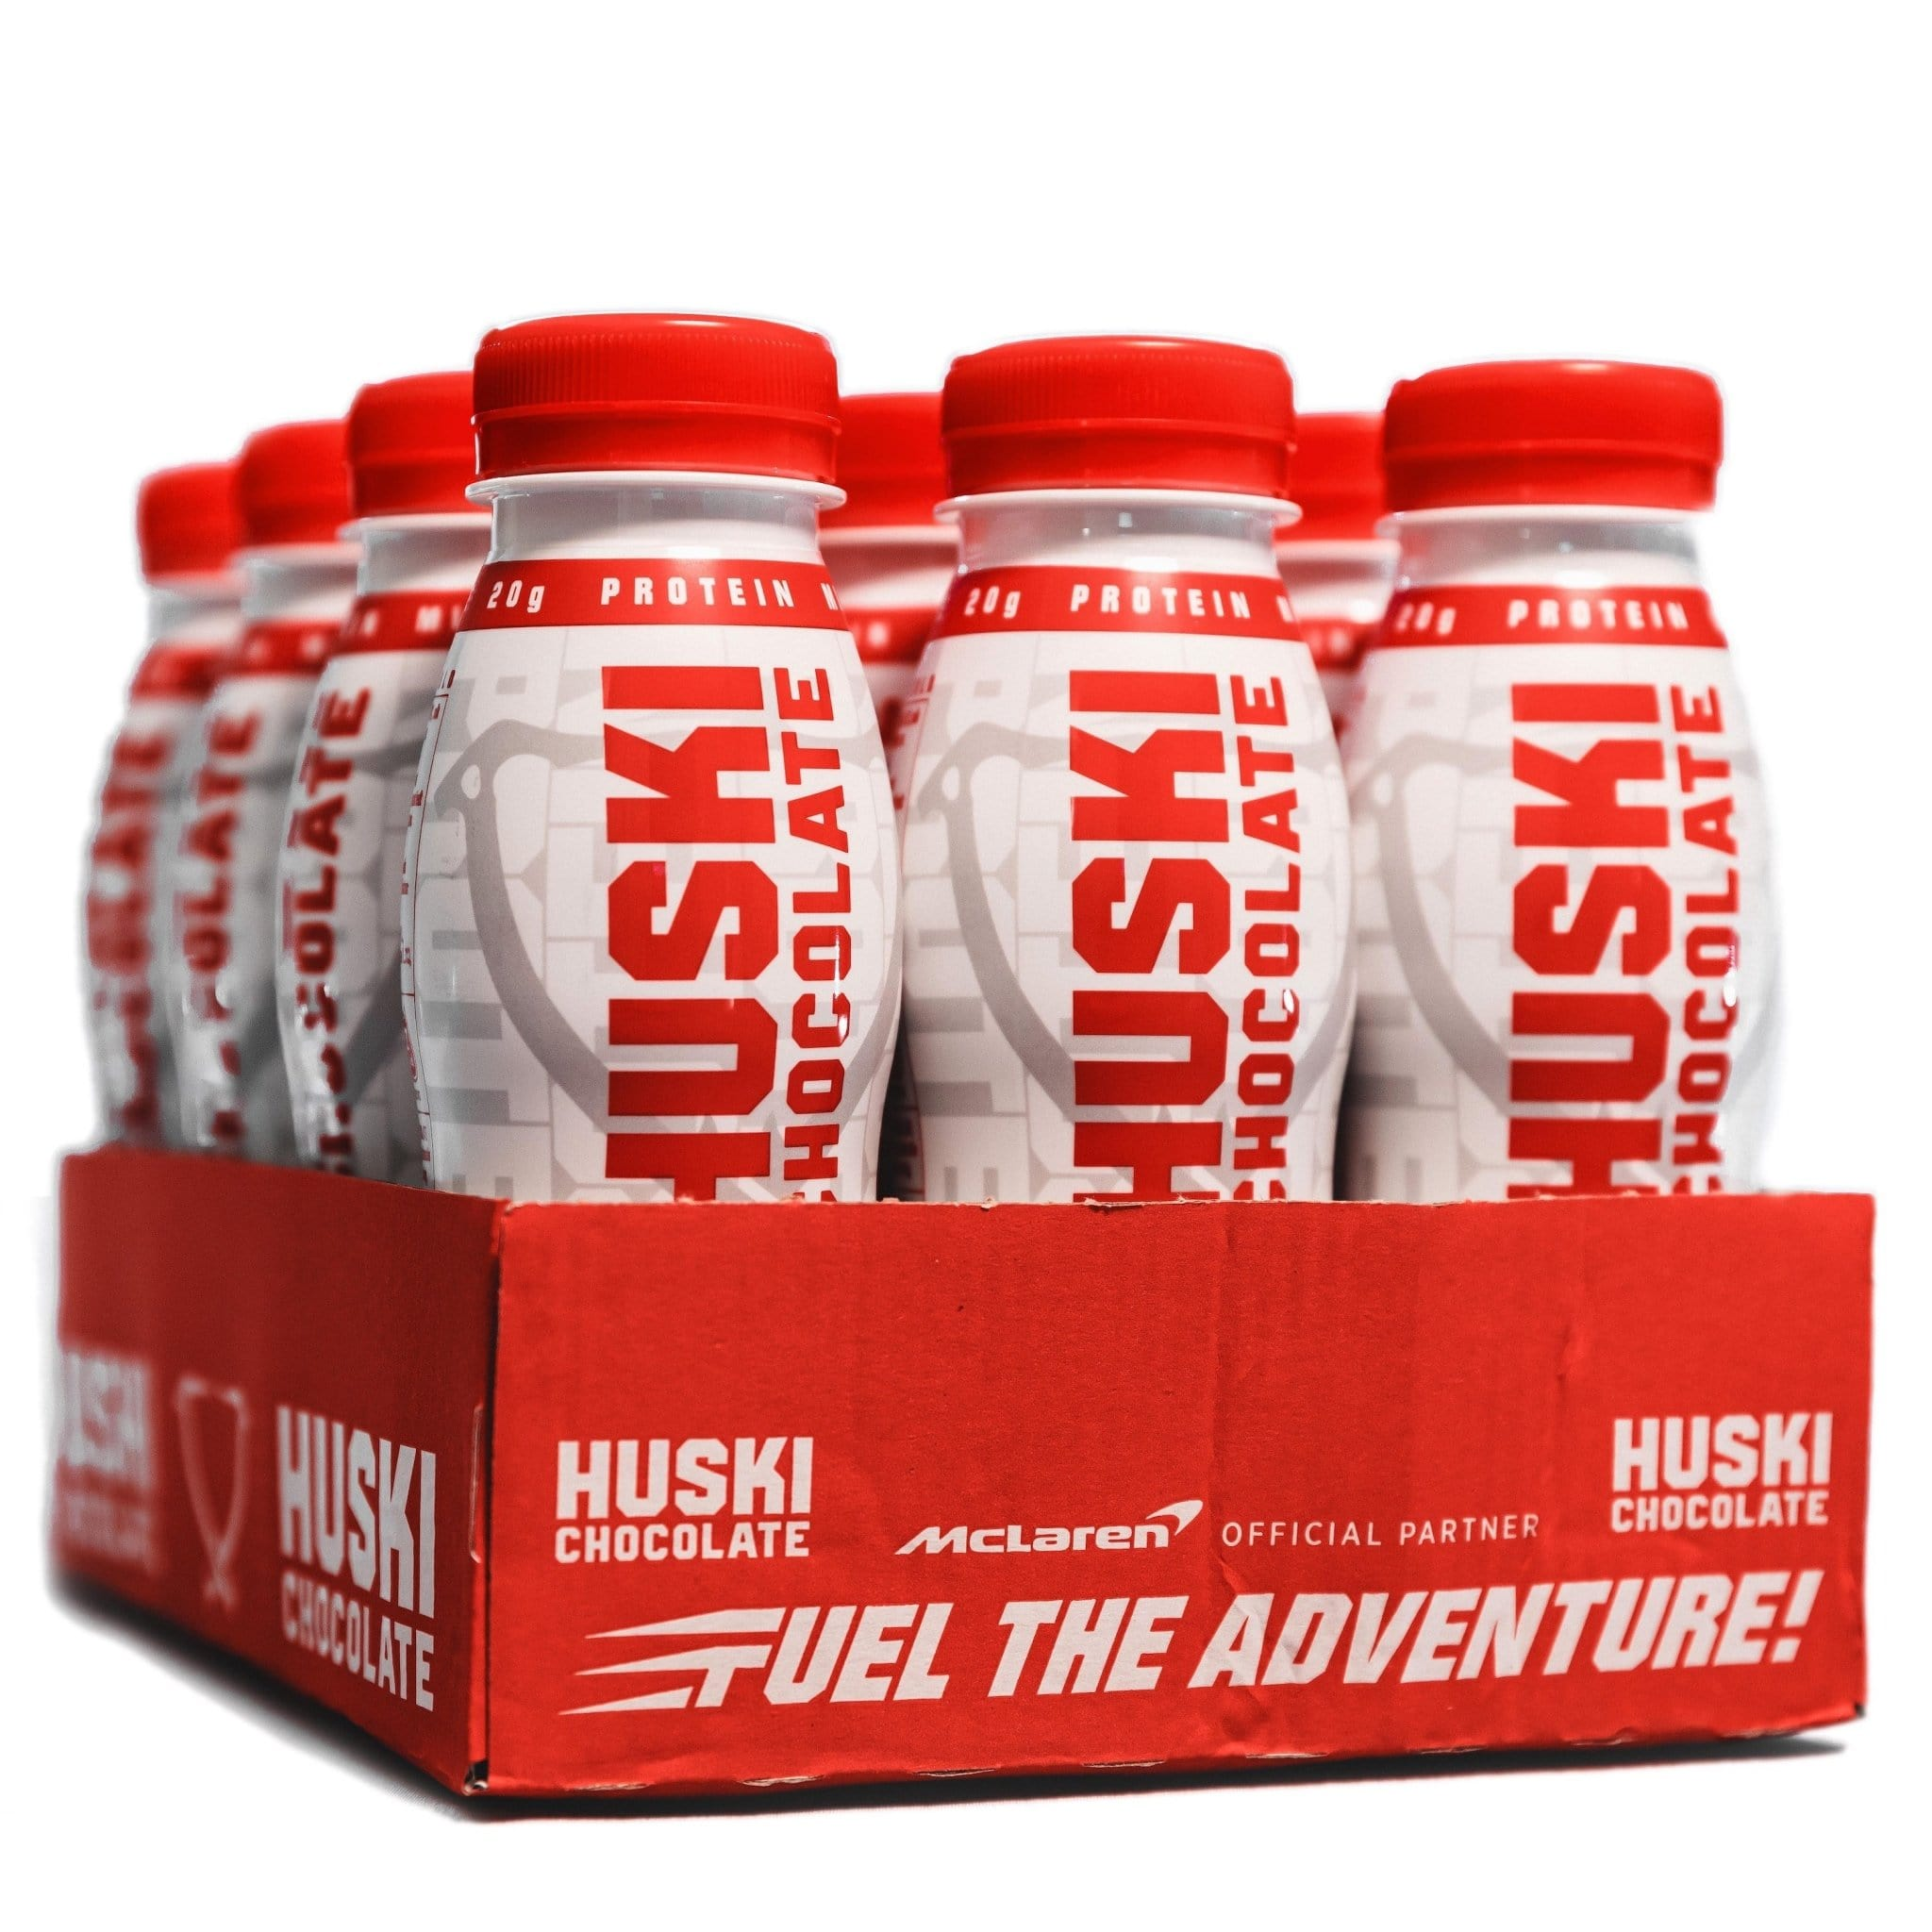 HUSKI CHOCOLATE PROTEIN Wholesale